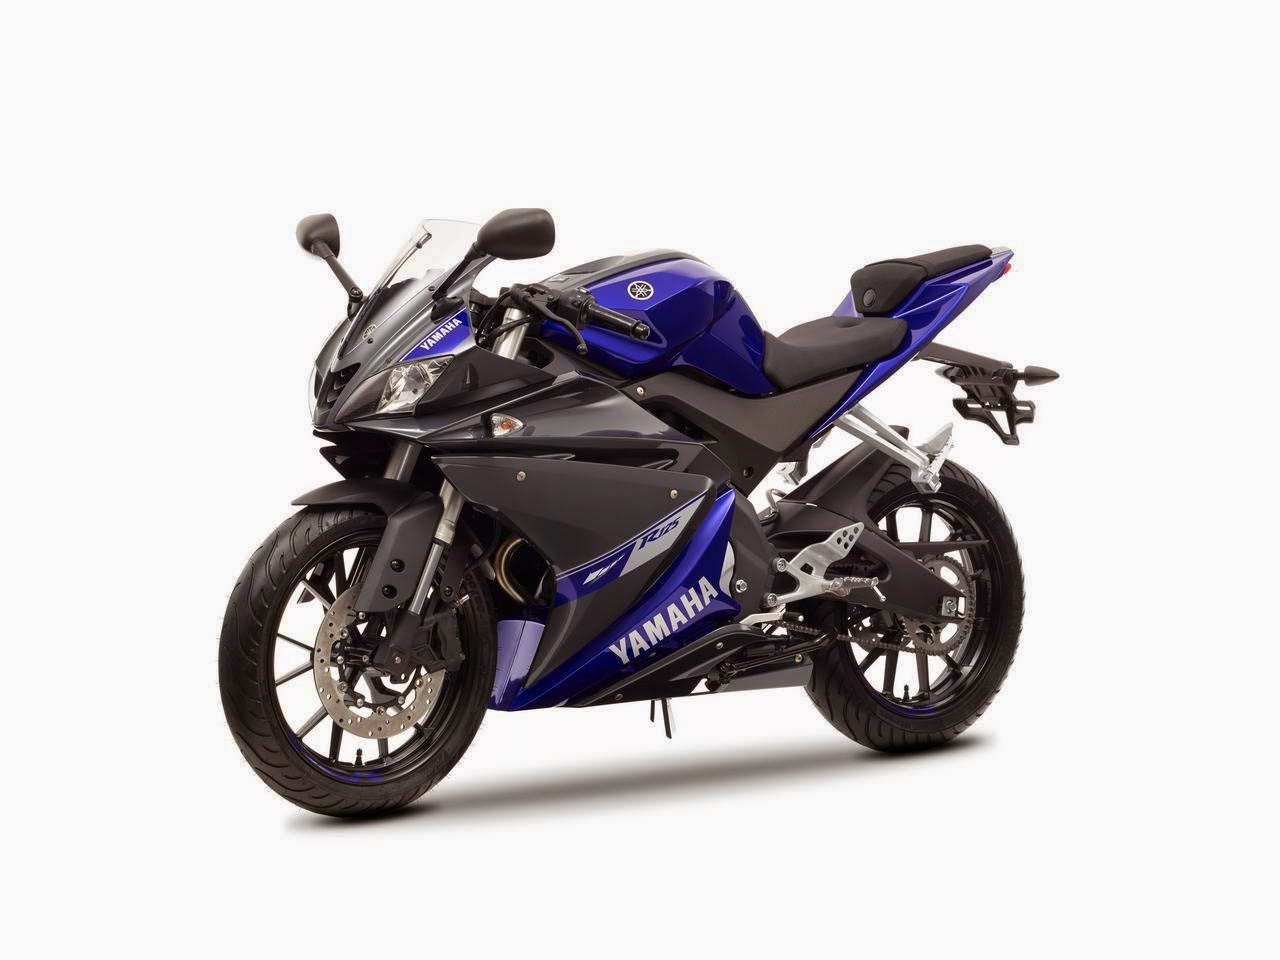 2015 Upcoming Bike Of Yamaha YZF-R125